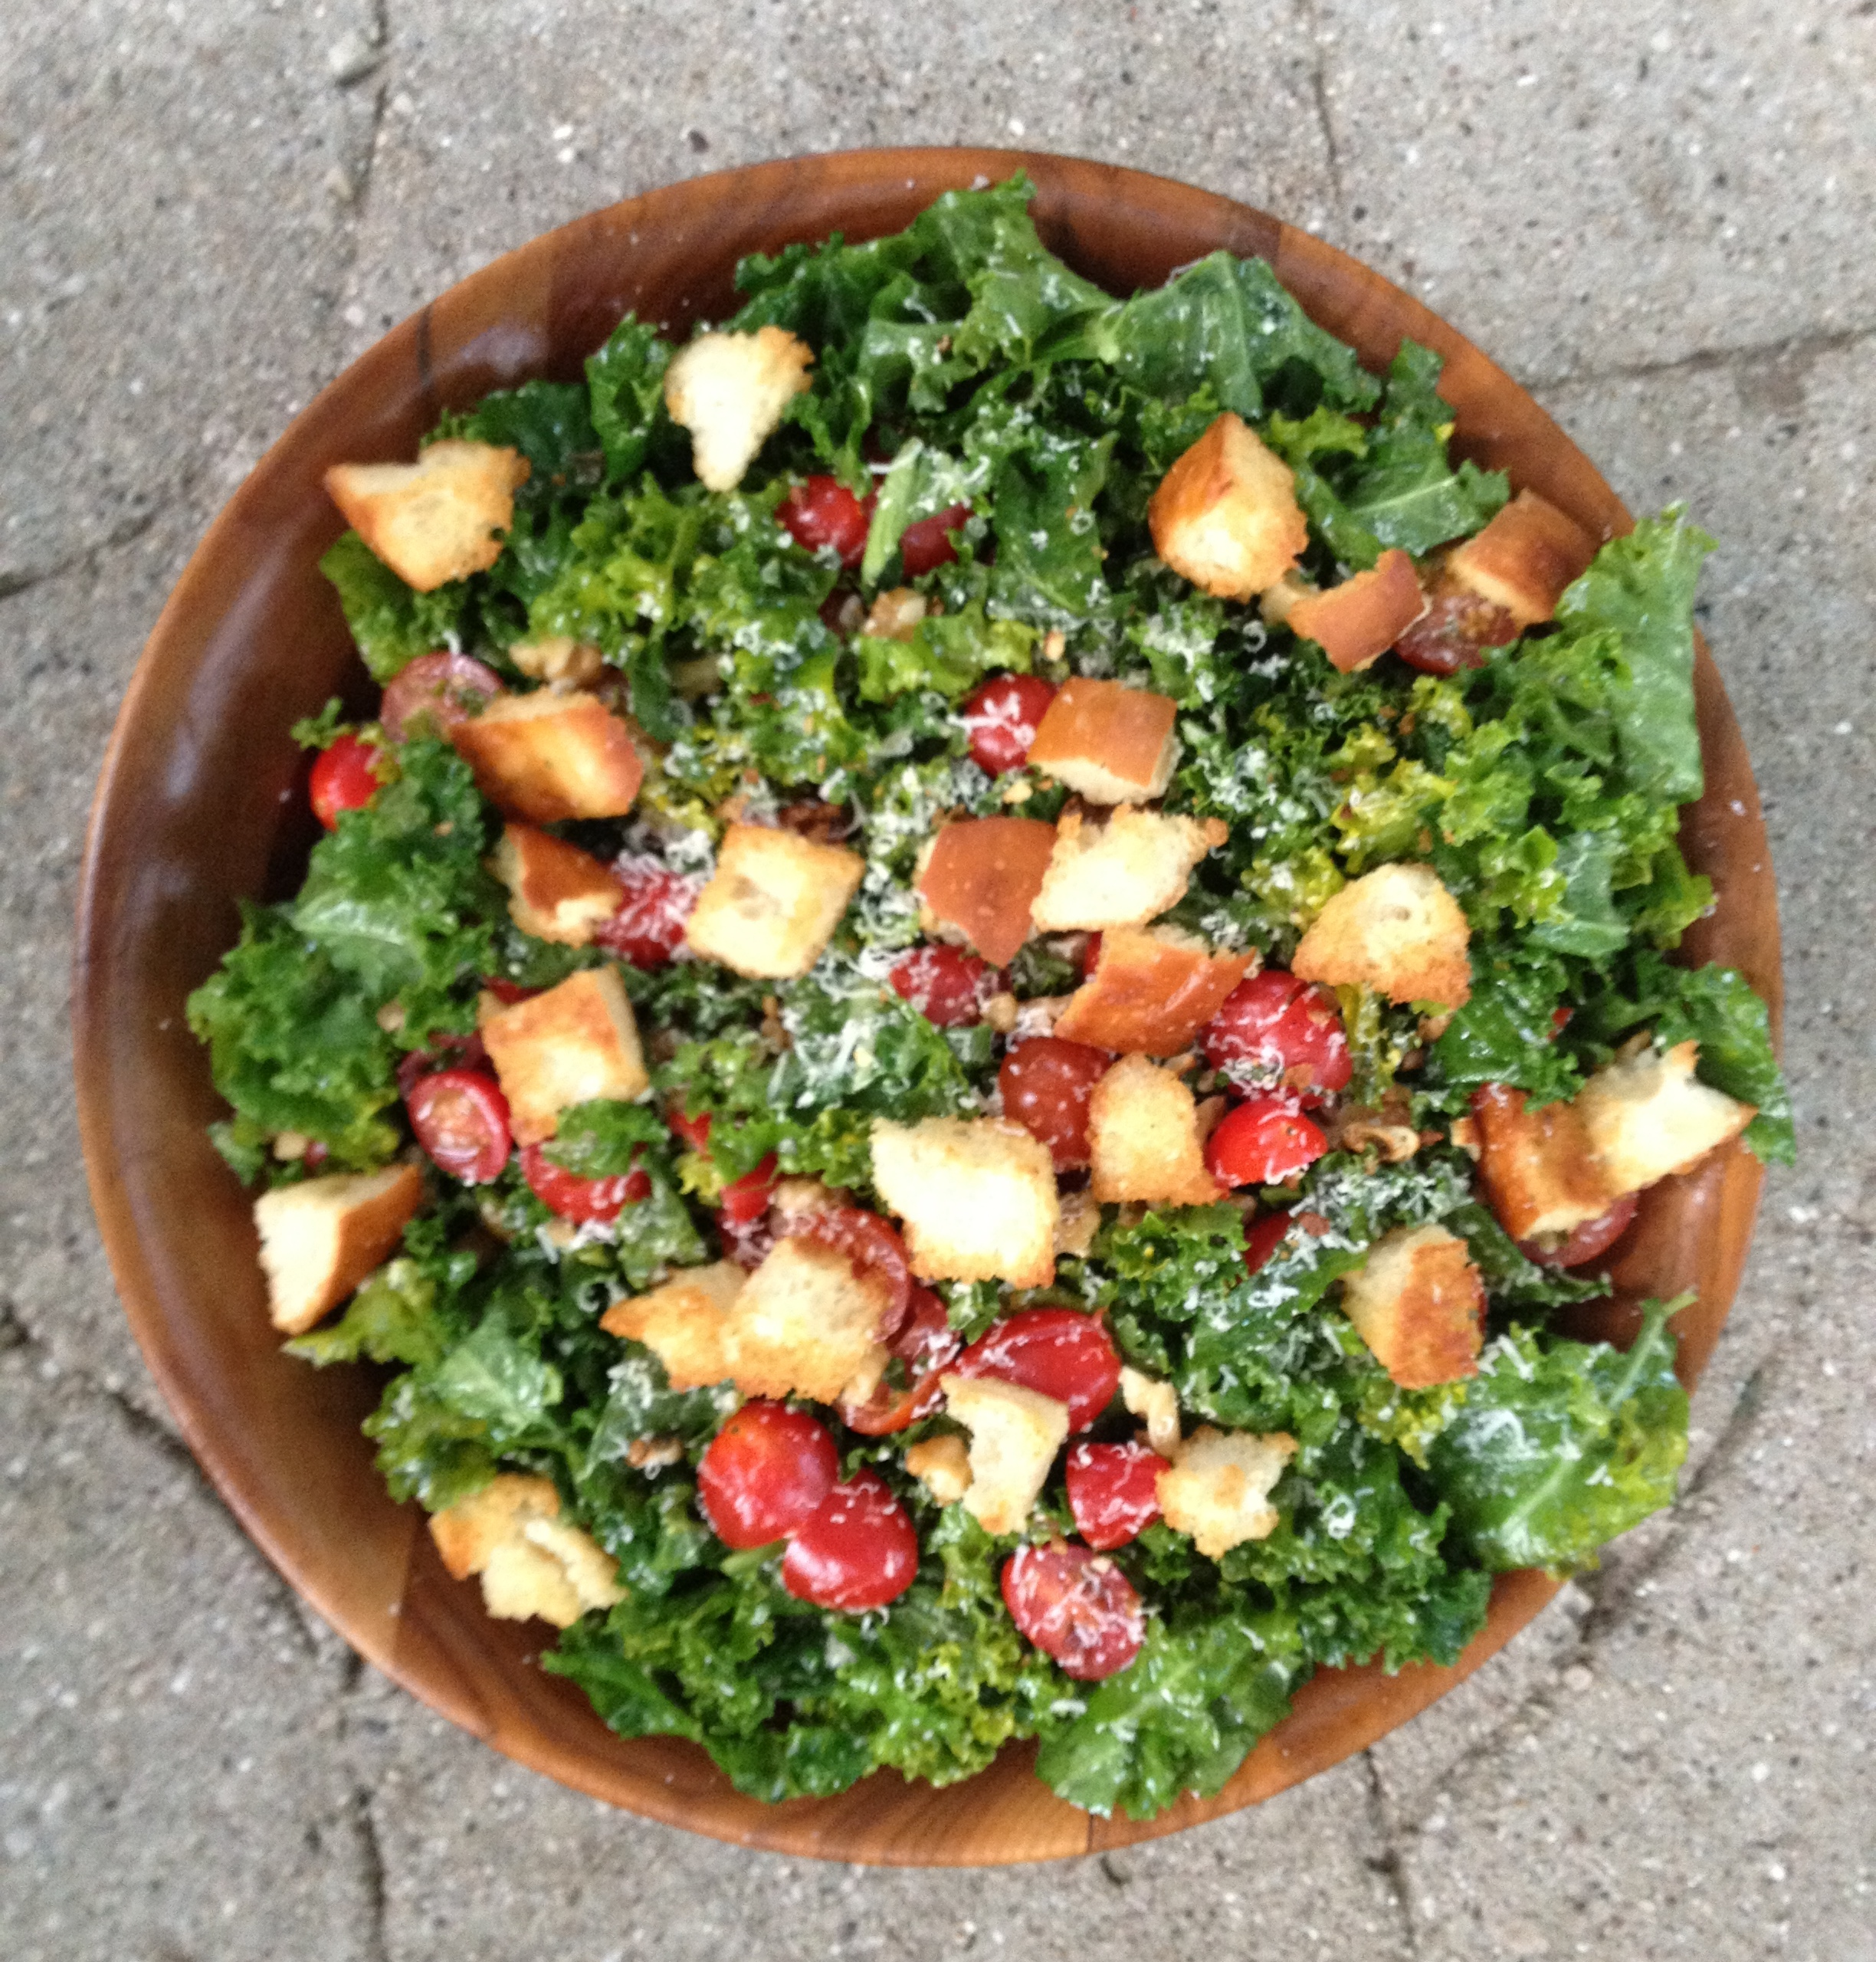 kale, walnut, and tomato salad with homemade croutons.